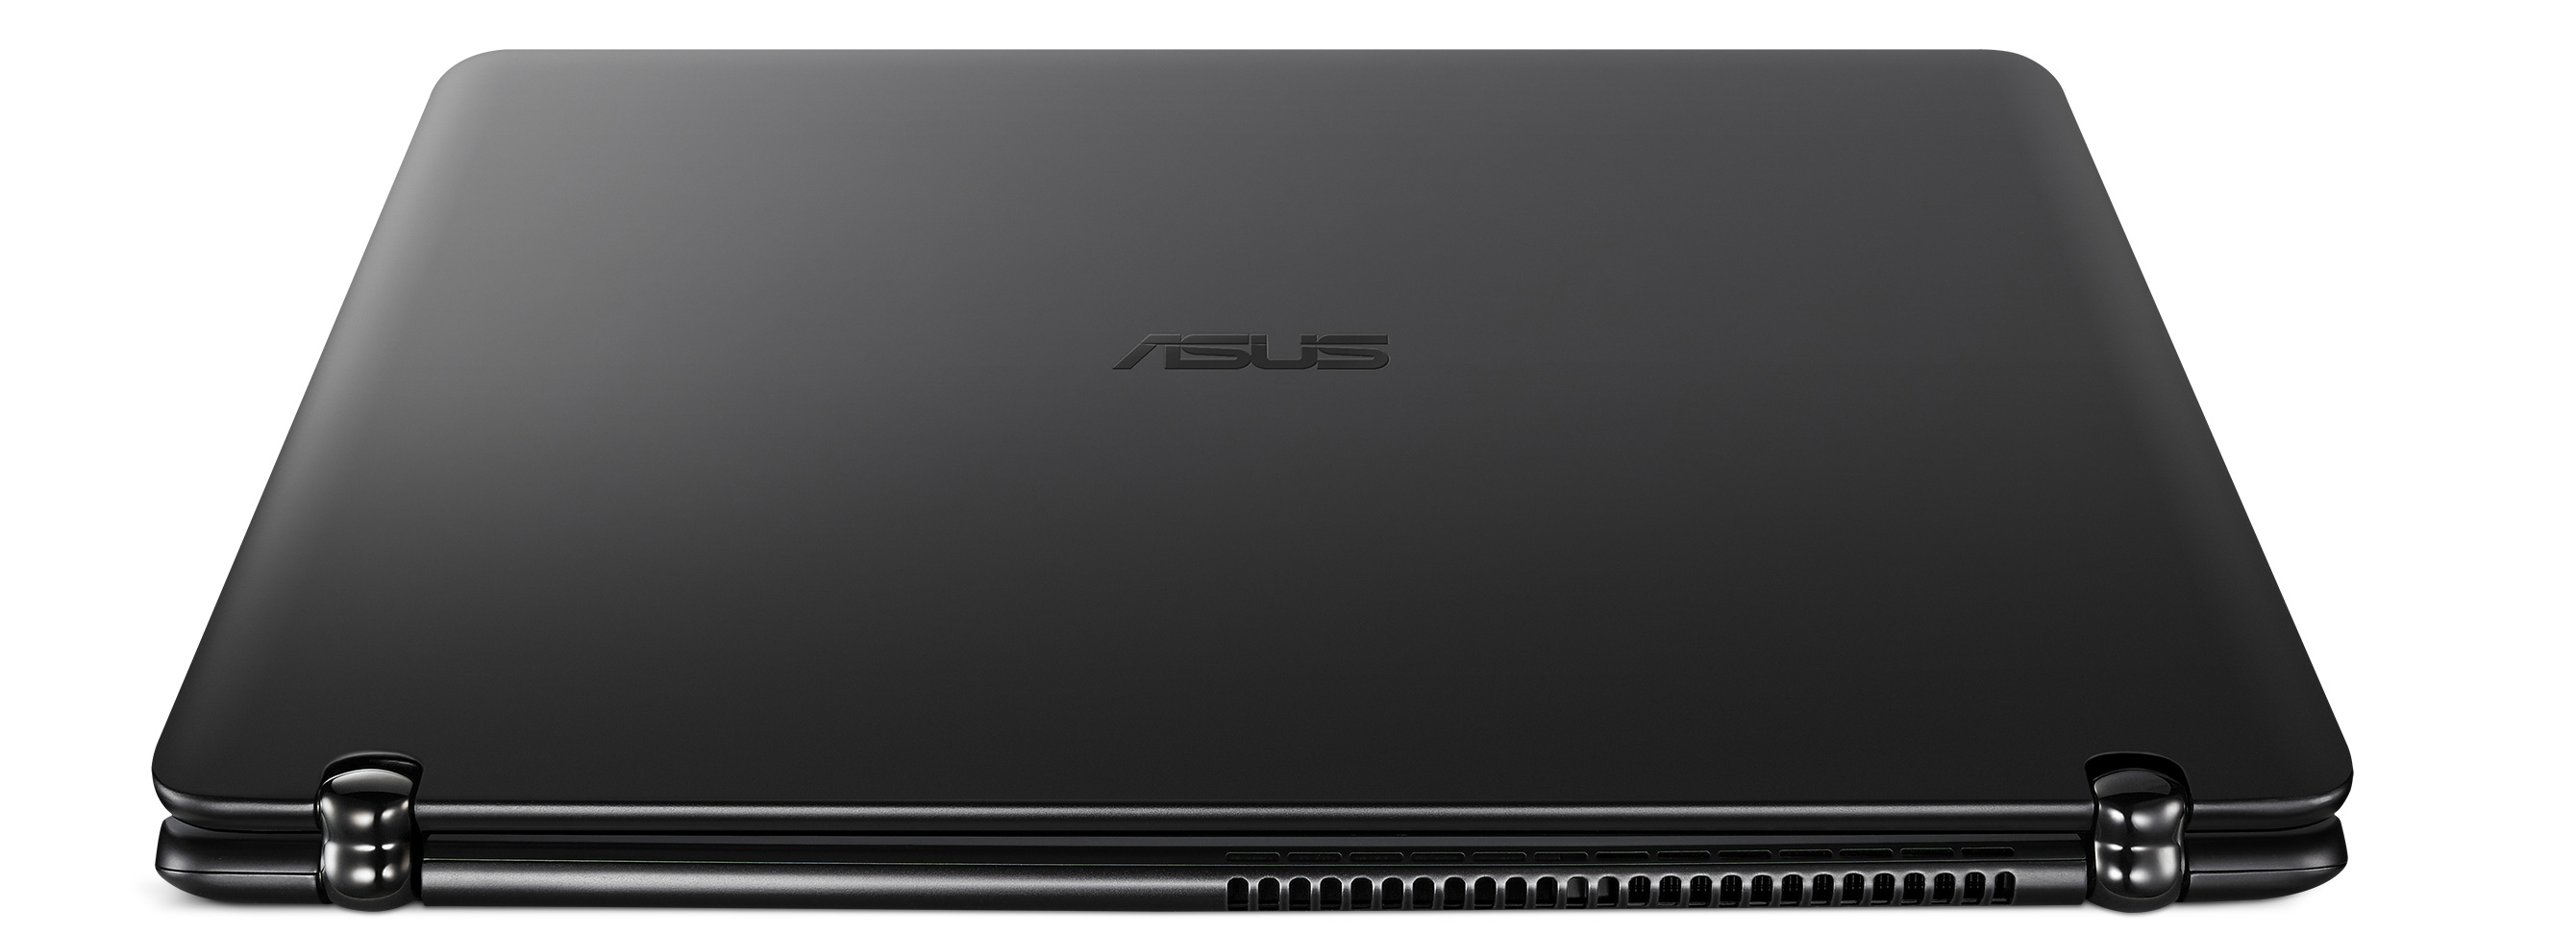 Q534ux laptops asus usa over 20000 torture tested greentooth Images